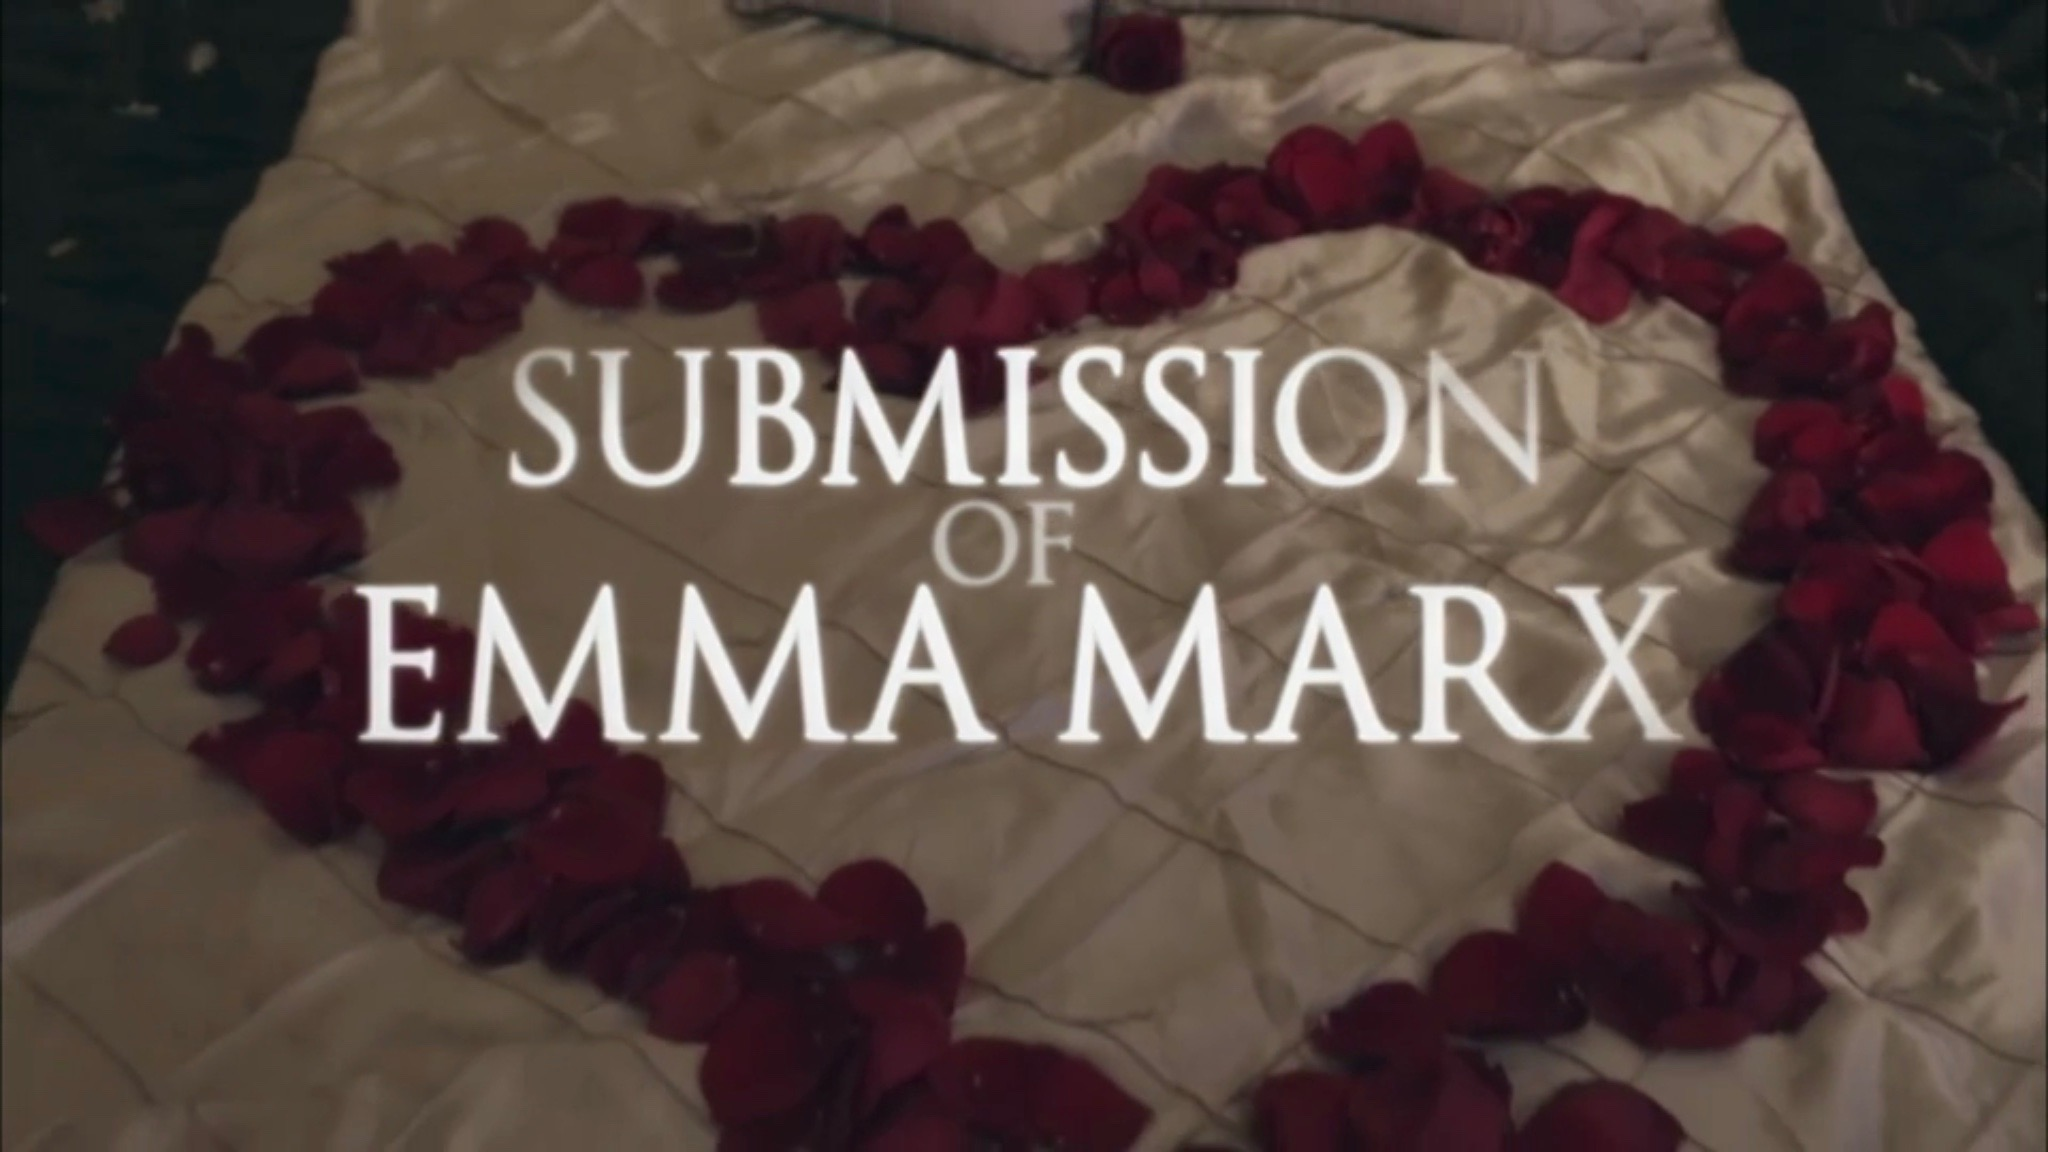 Watch the submission of emma marx